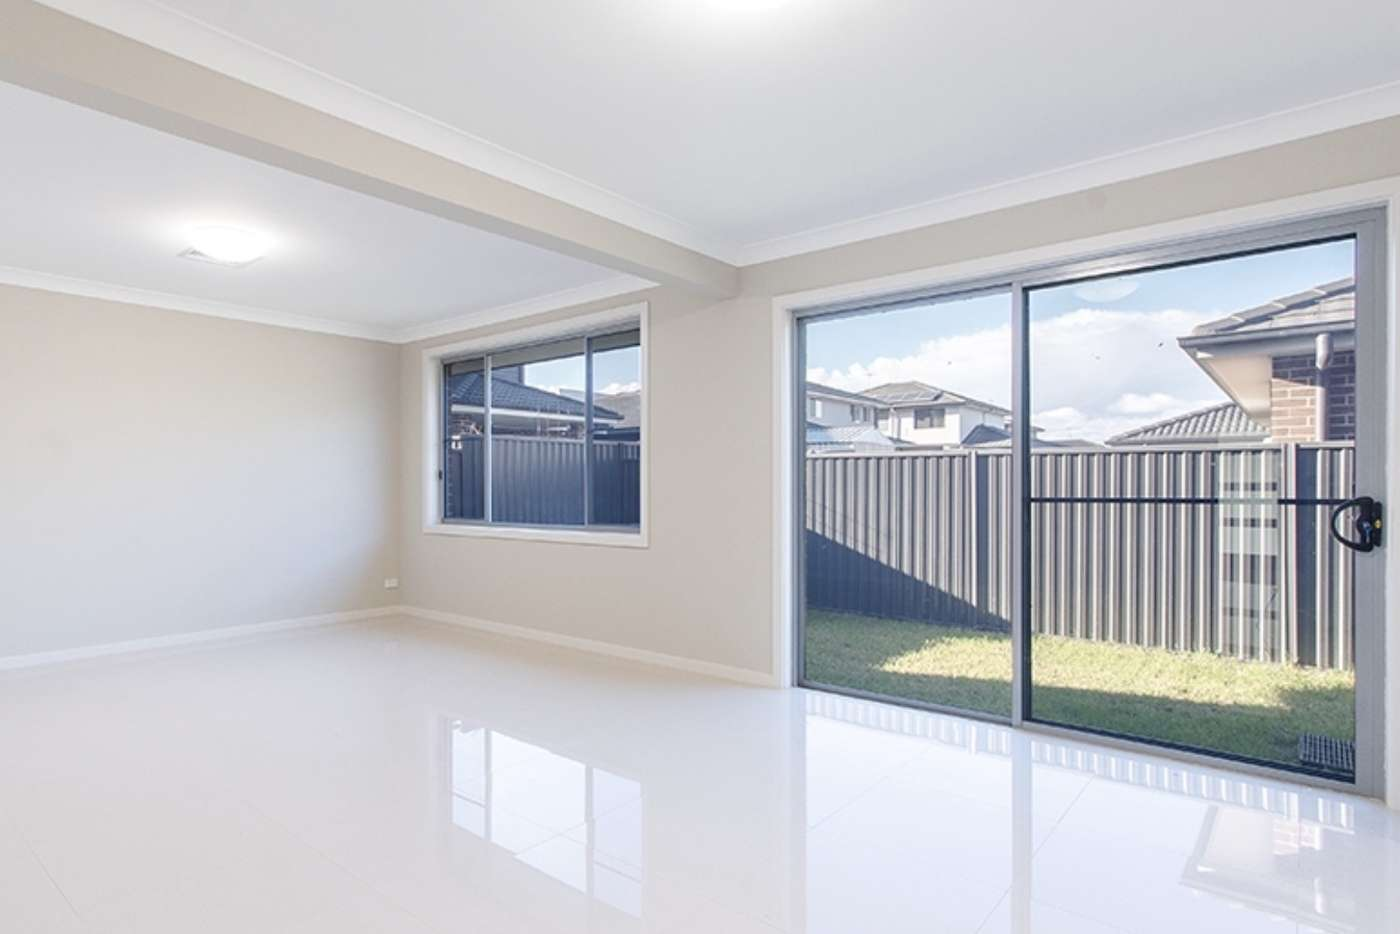 Sixth view of Homely house listing, 26 Smokebush Ave, Leppington NSW 2179